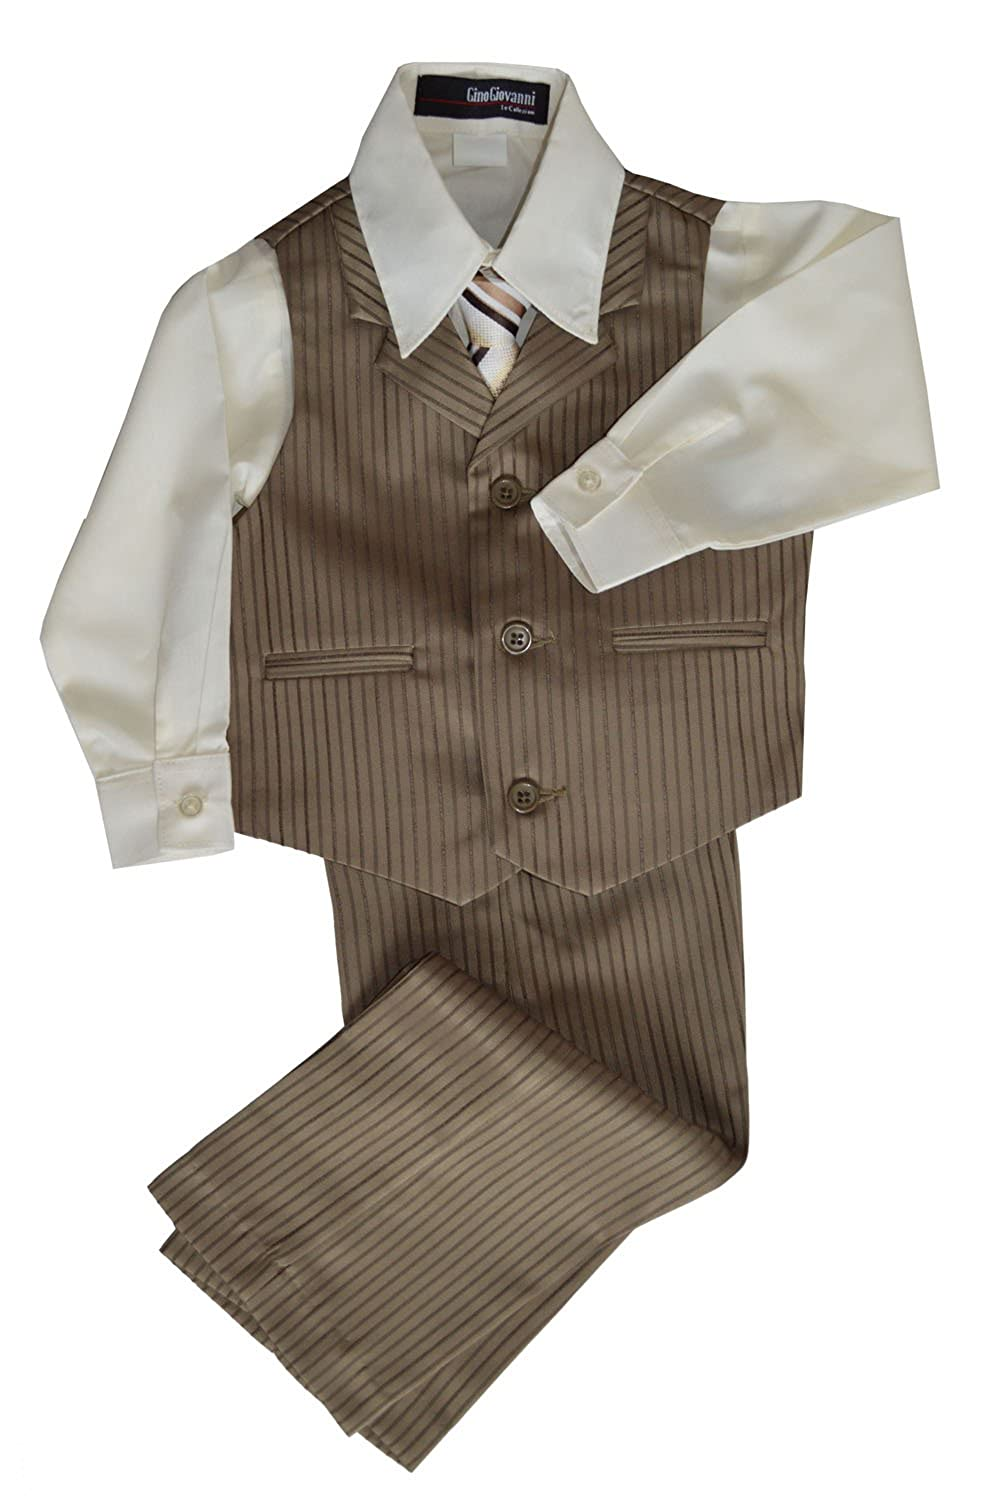 Victorian Kids Costumes & Shoes- Girls, Boys, Baby, Toddler Gino Giovanni Pinstripe Boys Formal Dresswear Vest Set $28.18 AT vintagedancer.com